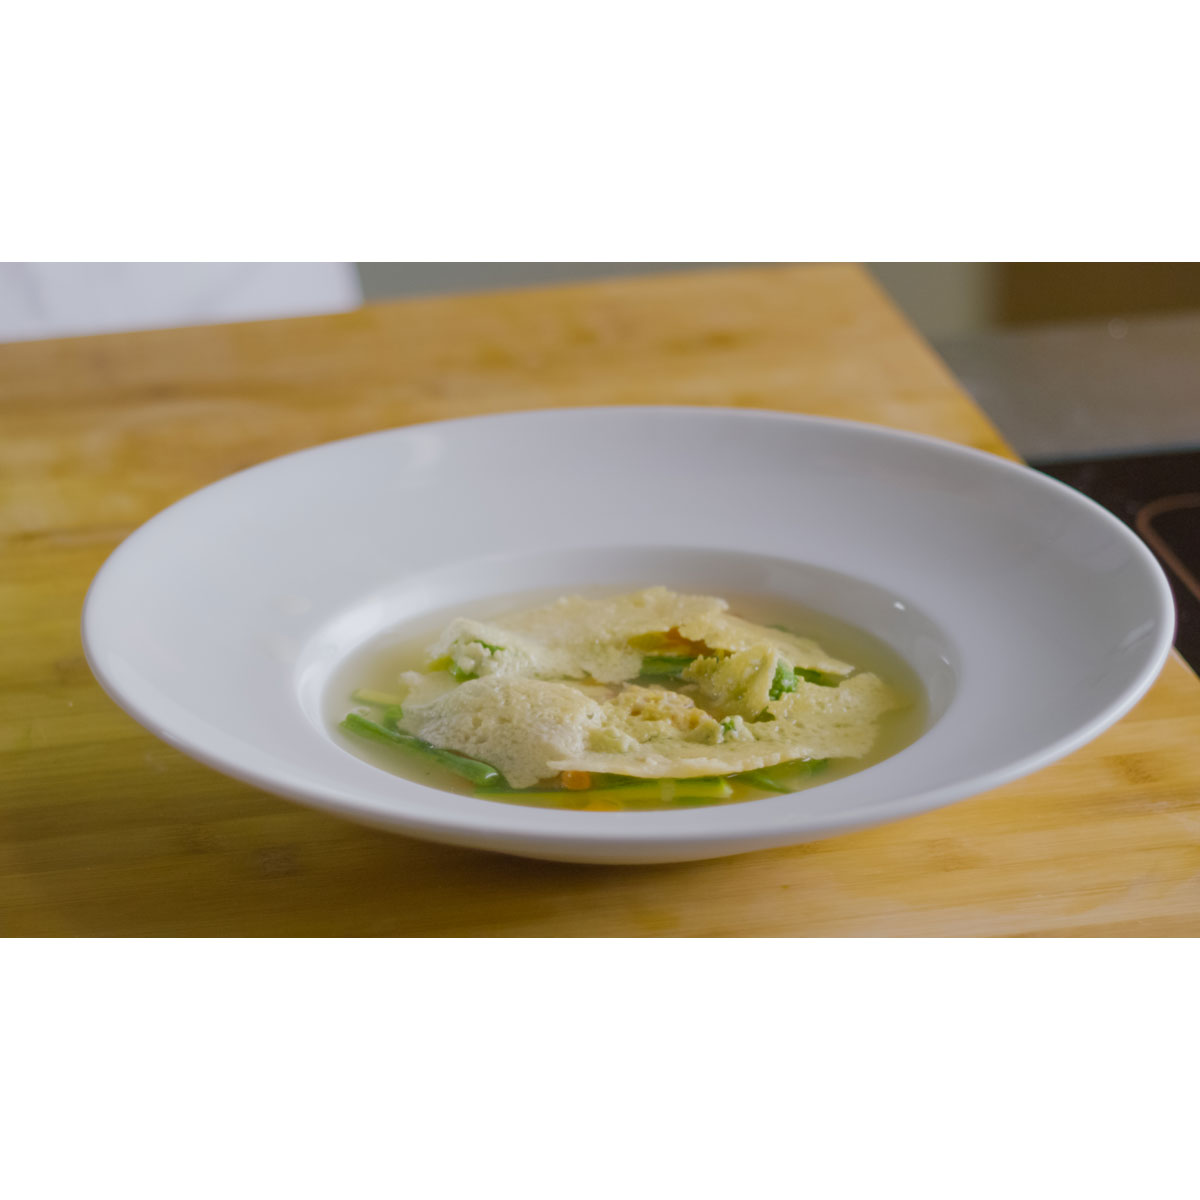 Vegetable minestrone soup with Grana Padano crispy crust